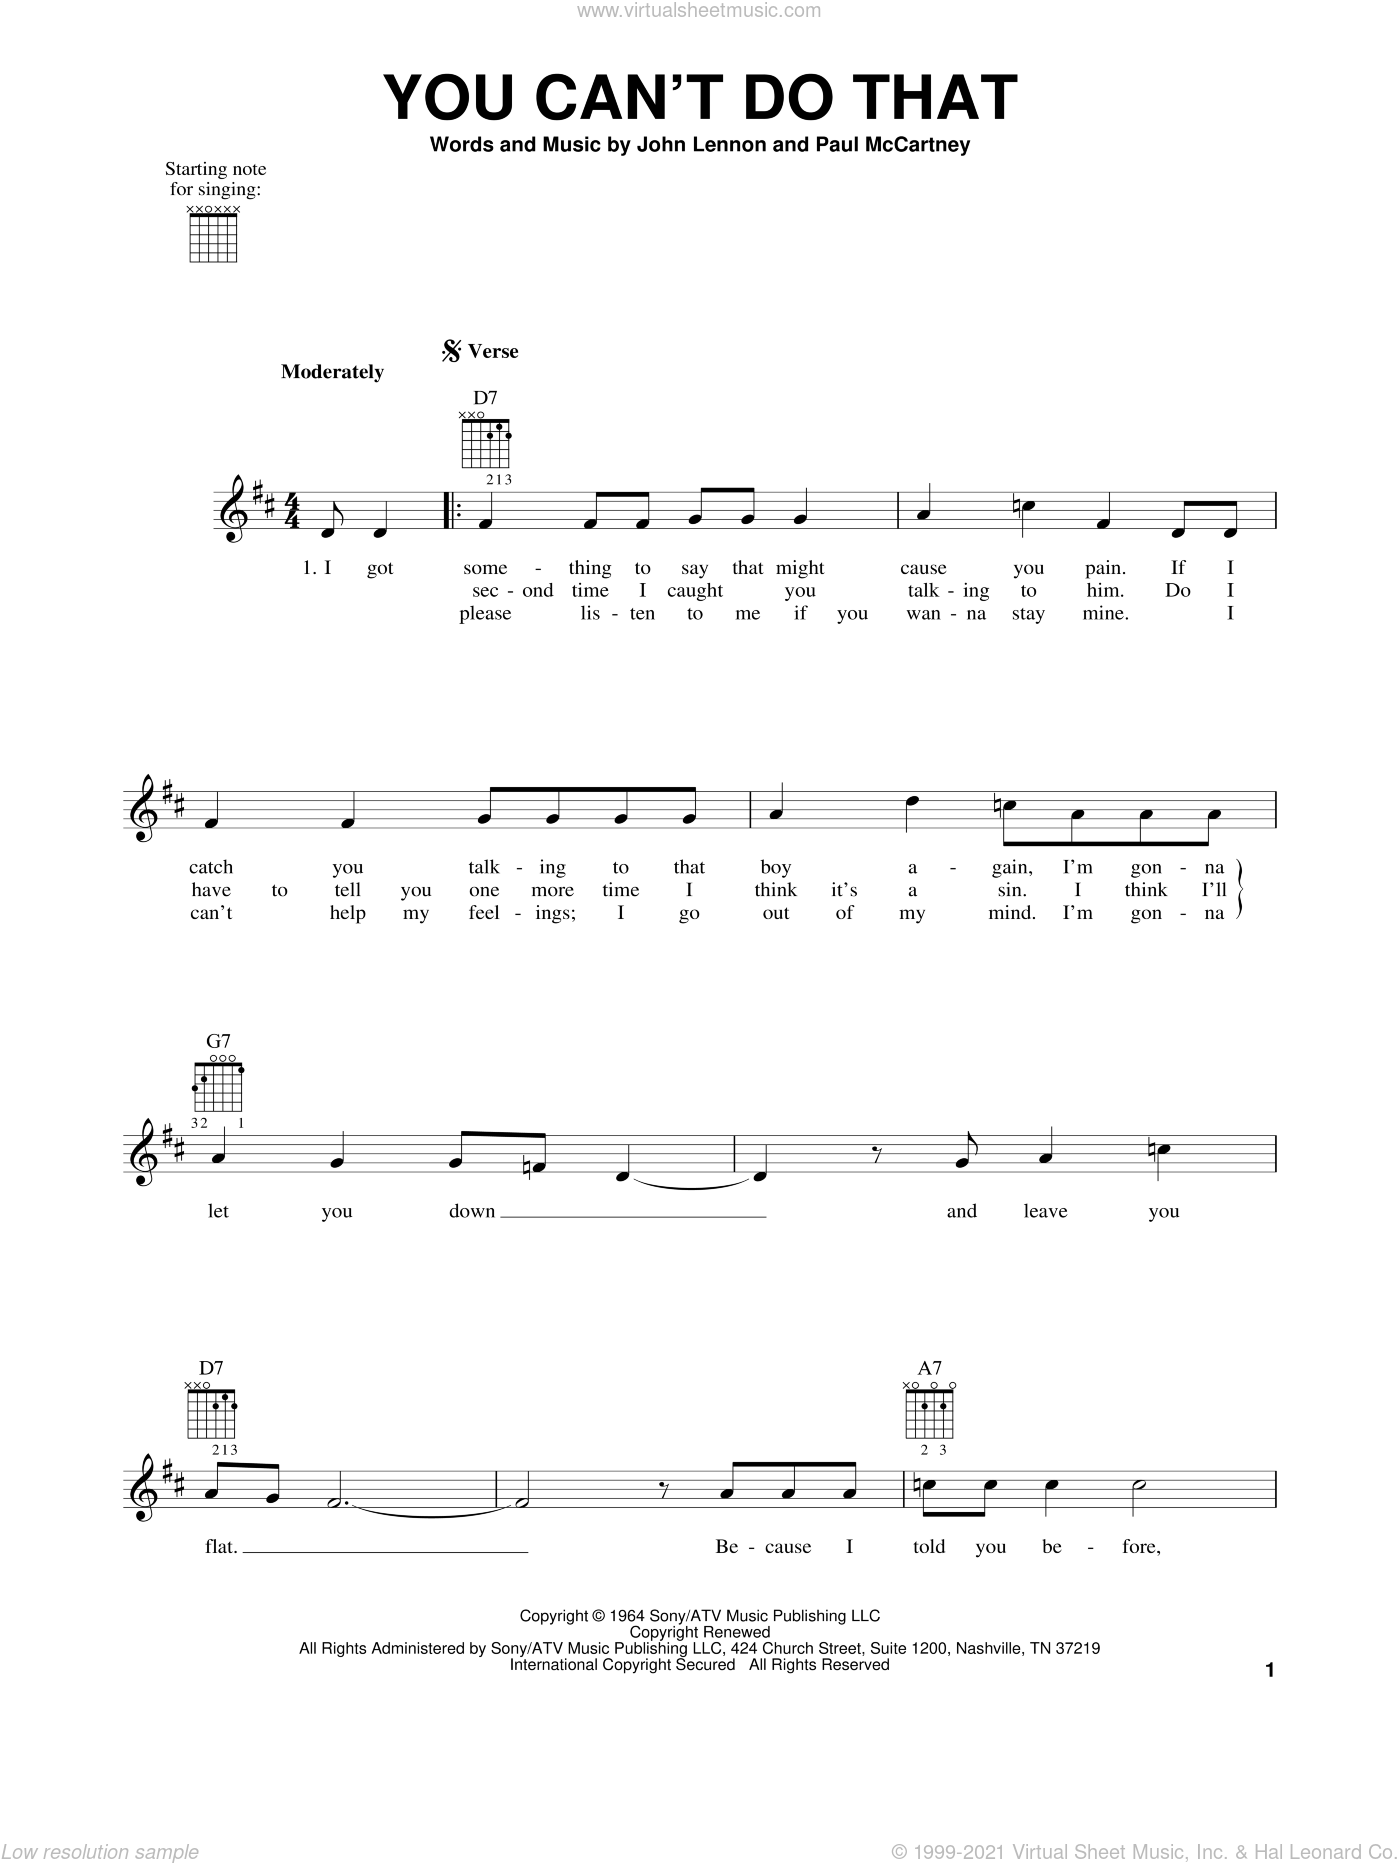 You Can't Do That sheet music for guitar solo (chords) by Paul McCartney